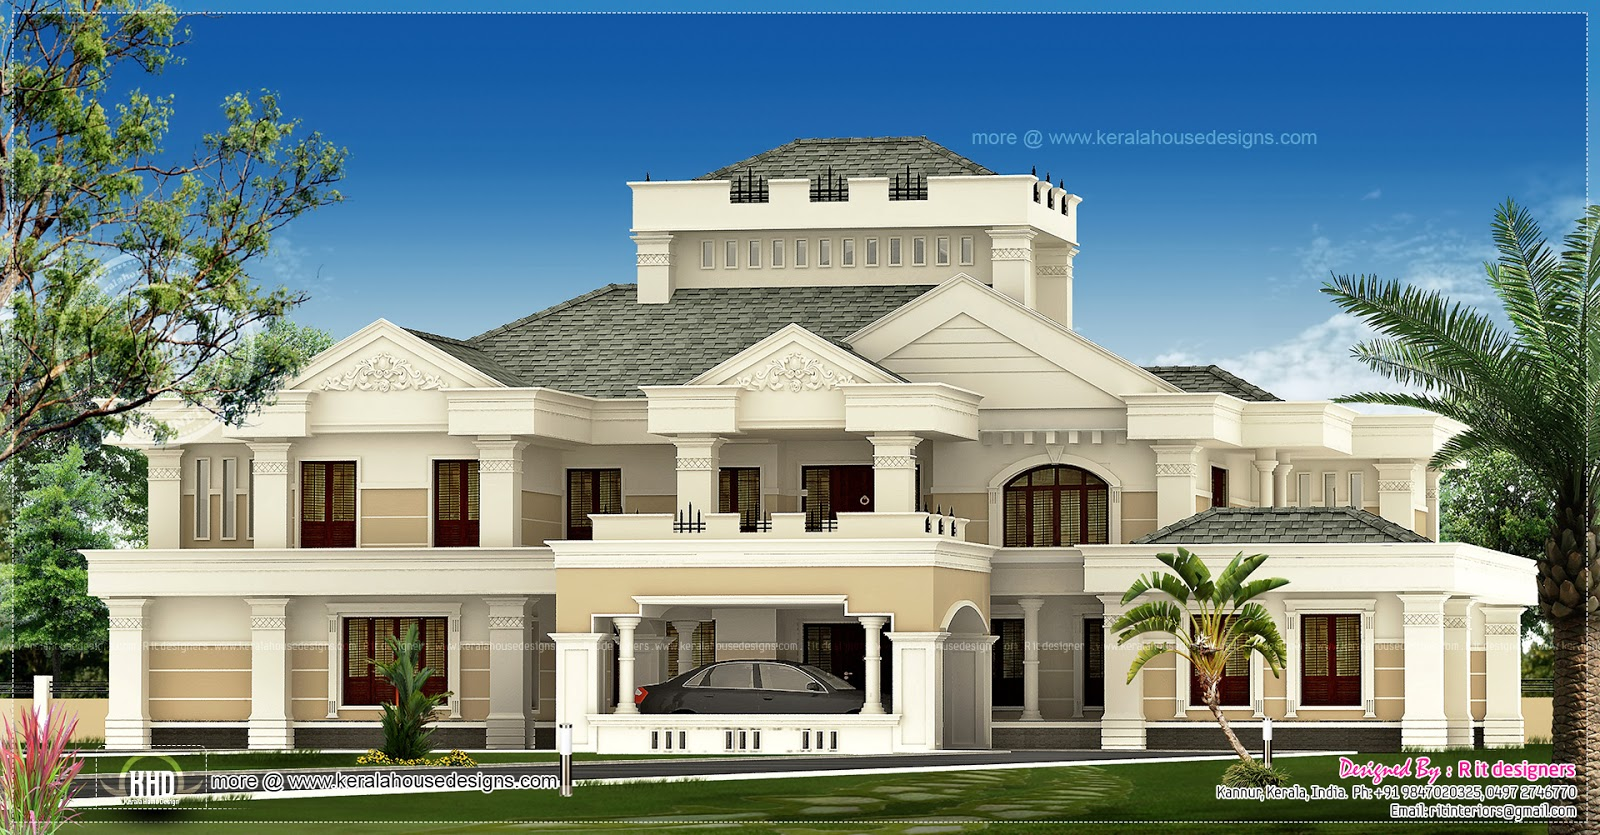 Super luxury kerala house exterior kerala home design and floor plans - Luxury home designs plans ...